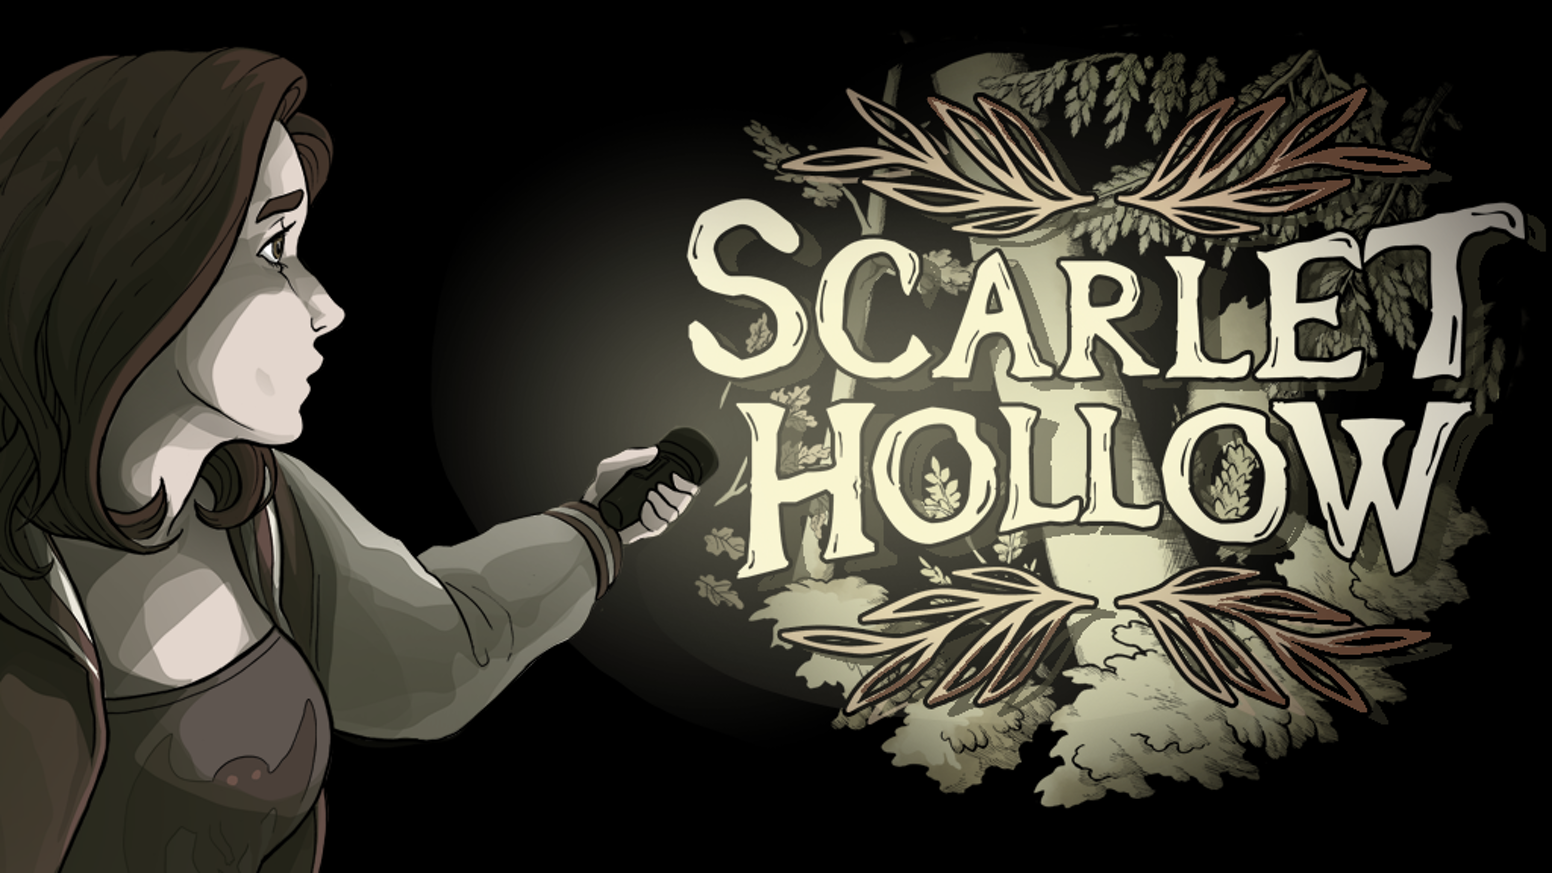 A hand-drawn, choice-driven horror adventure game from award winning graphic novelist Abby Howard.